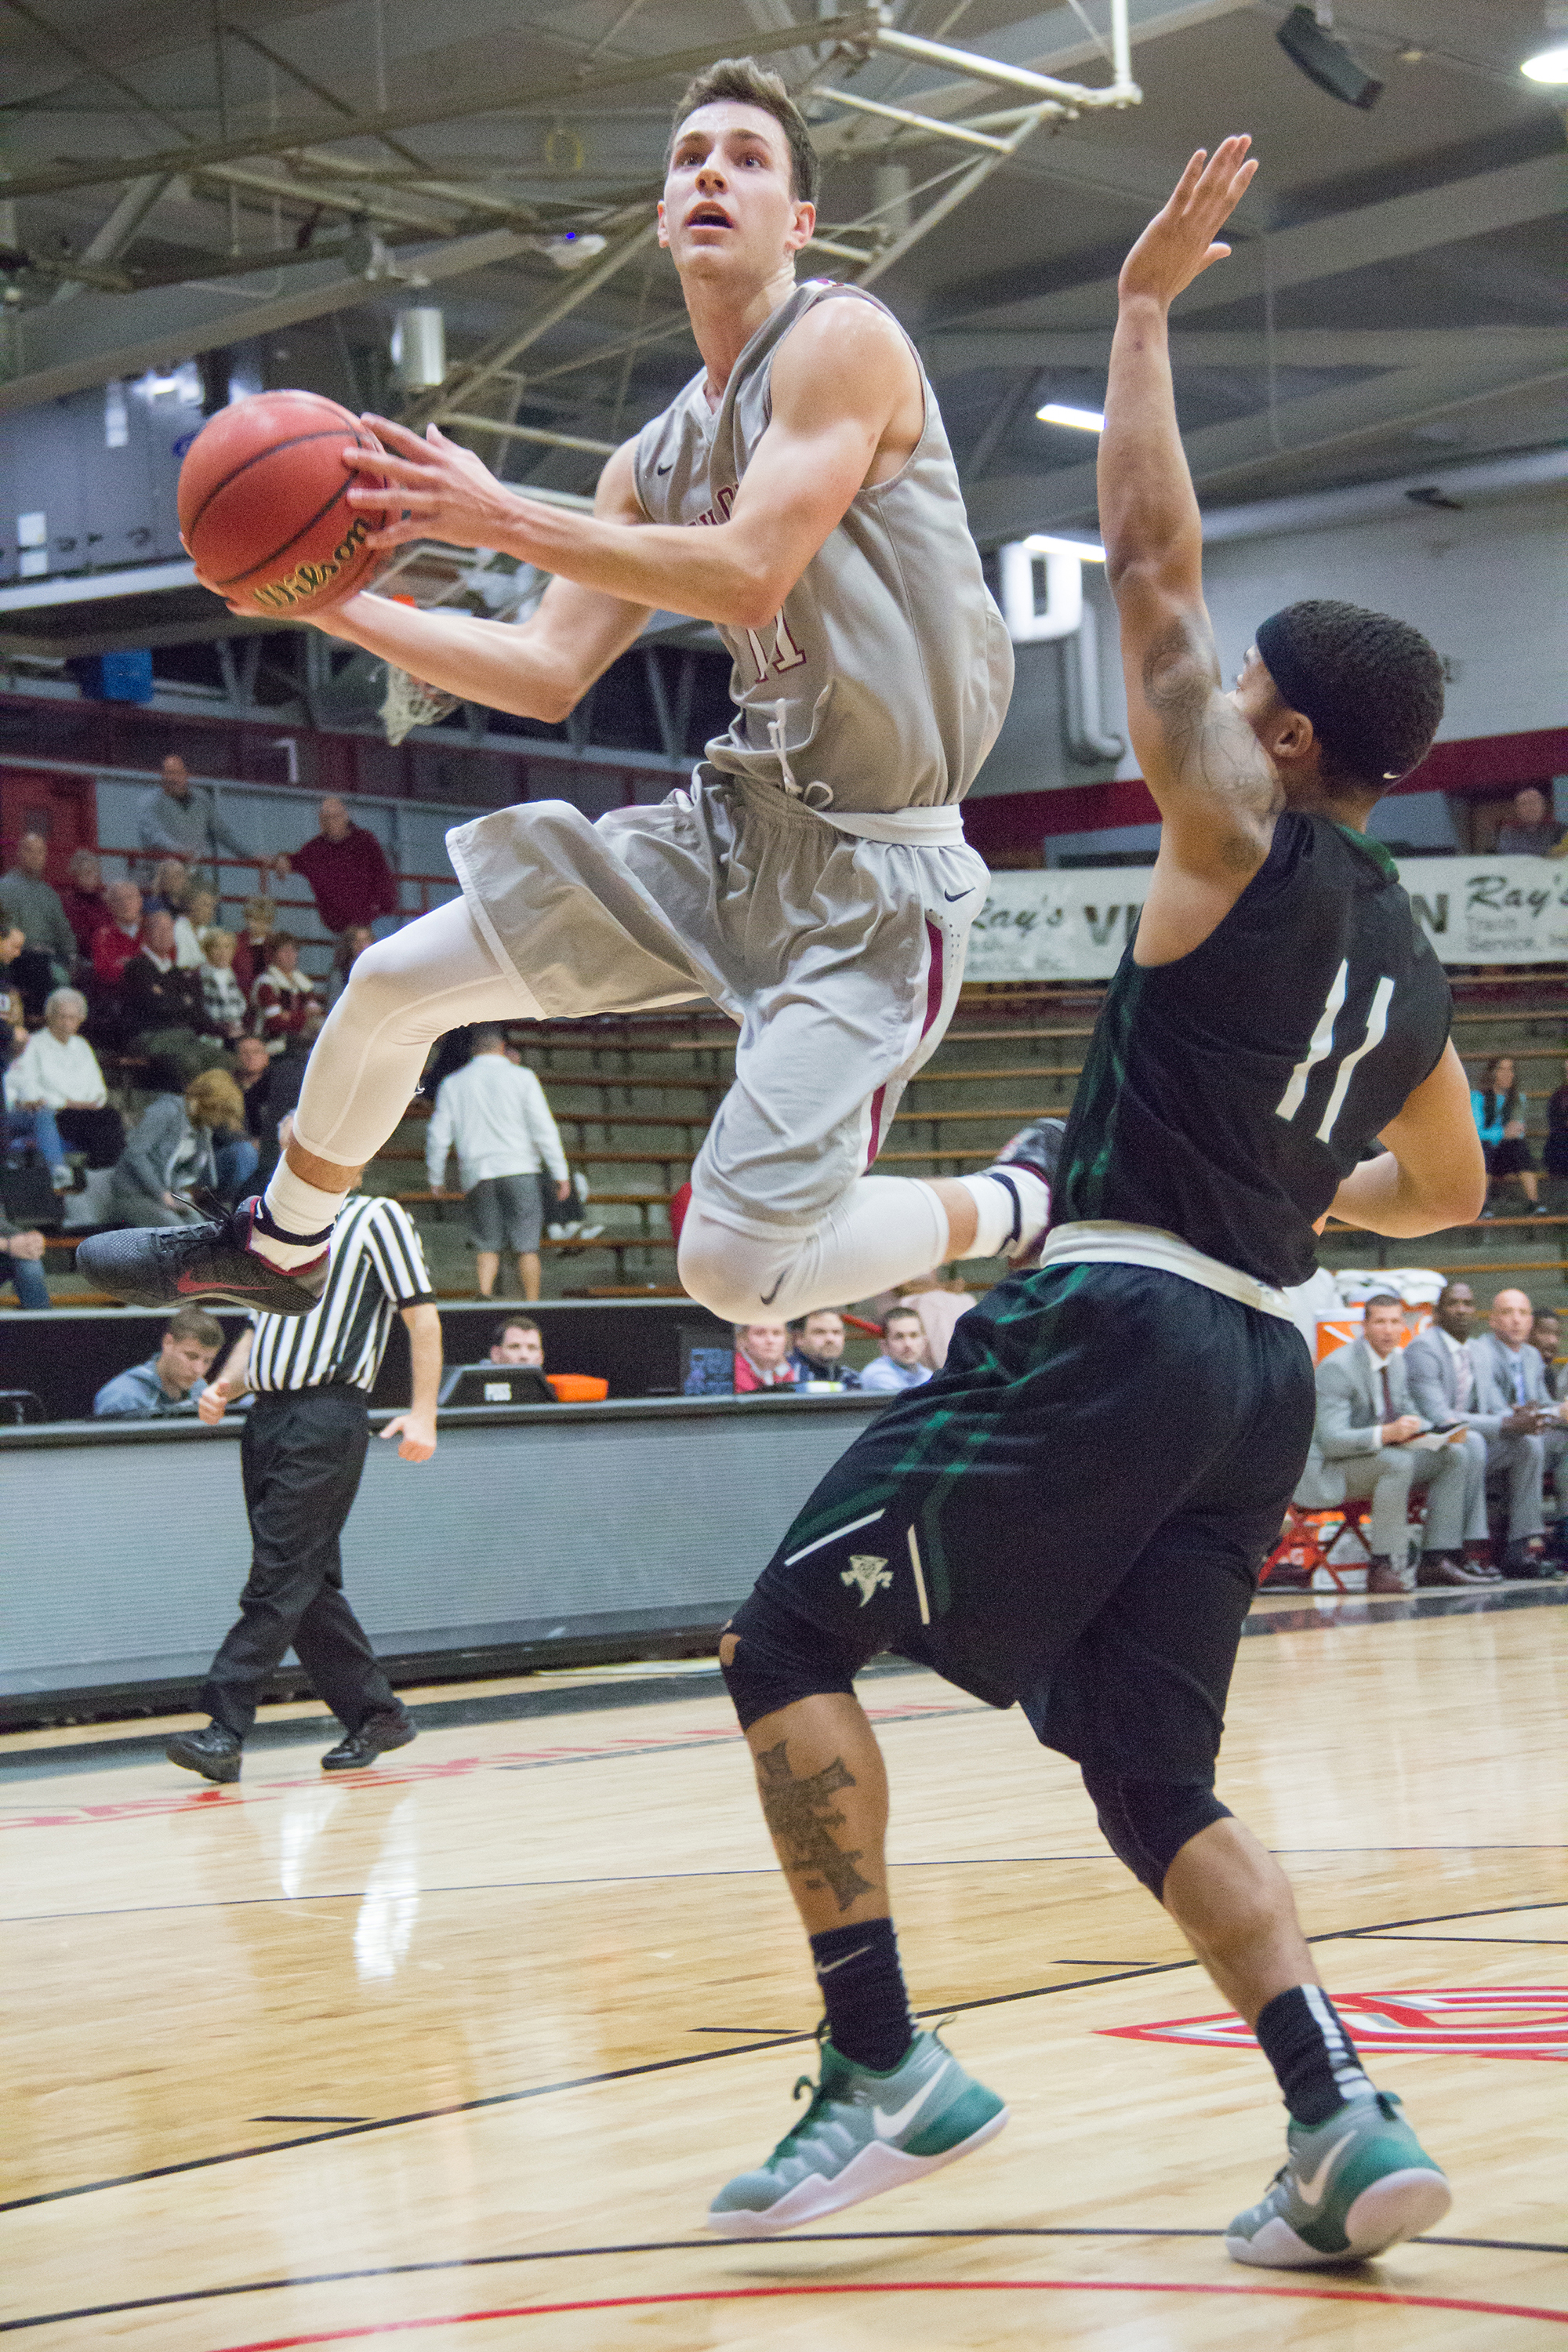 Sophomore guard Jimmy King takes a layup in the game against Lake Erie College on Nov. 13 in the GLIAC/GLVC Challenge, which was hosted by UIndy in Nicoson Hall. Photo by Jennifer Ulery